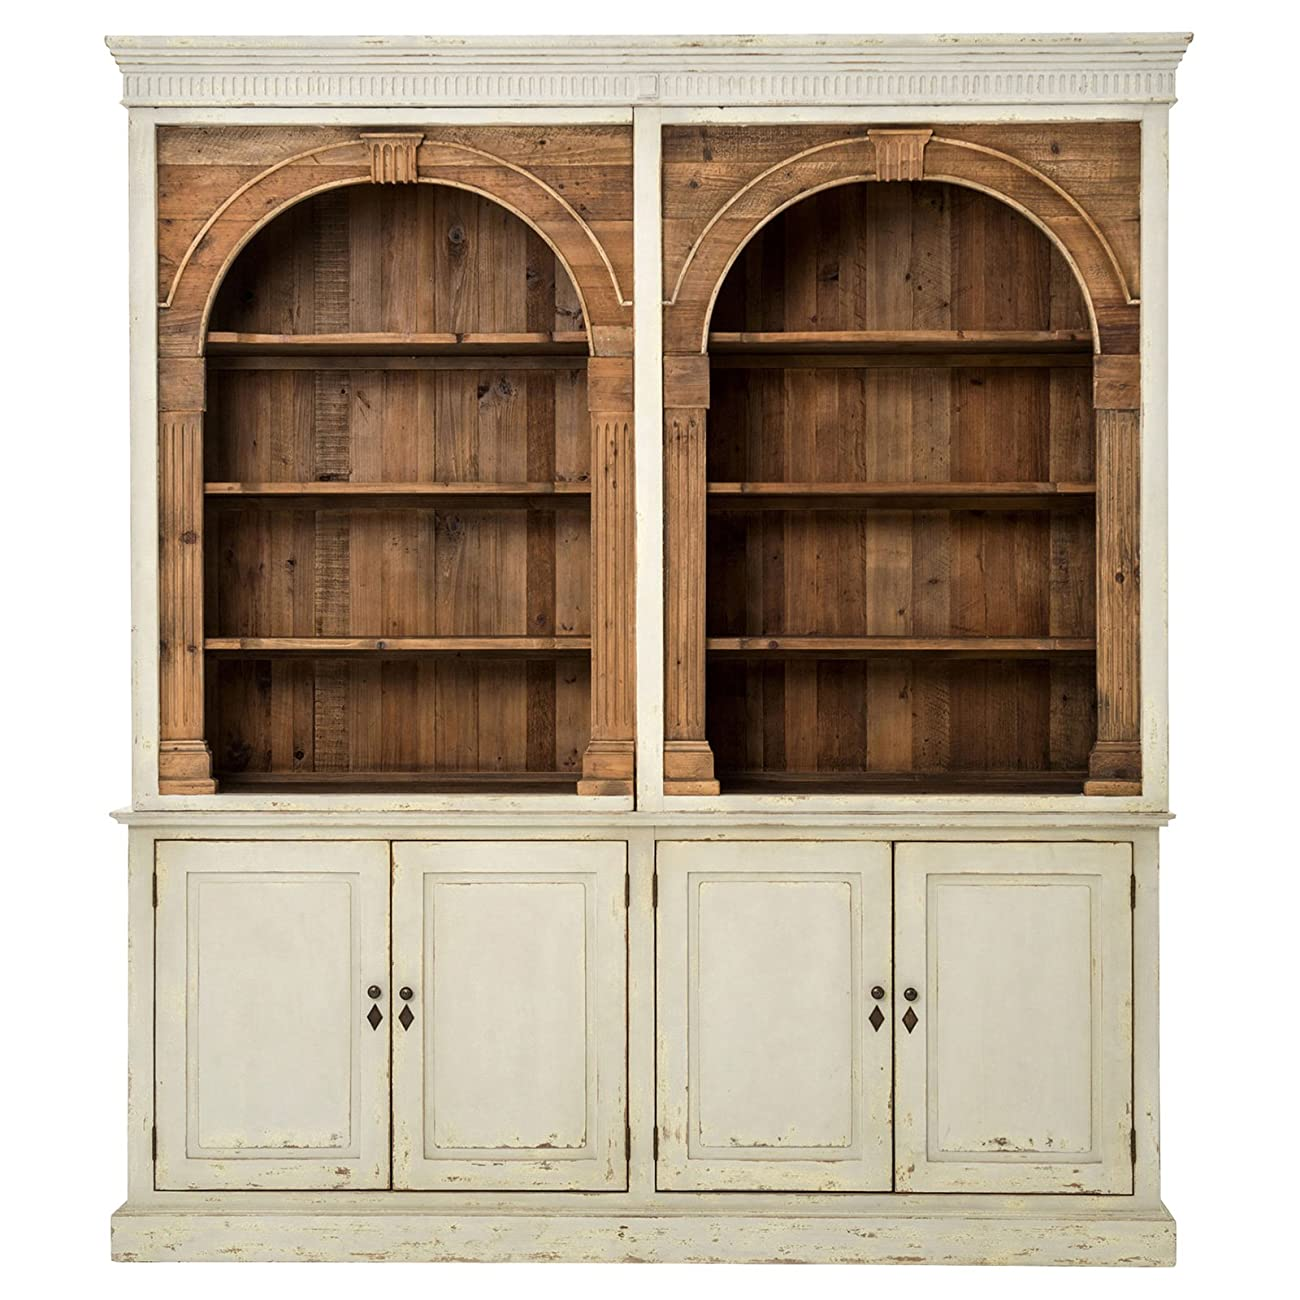 Laurine French Country Rustic Ivory Arch Wood Cabinet 2